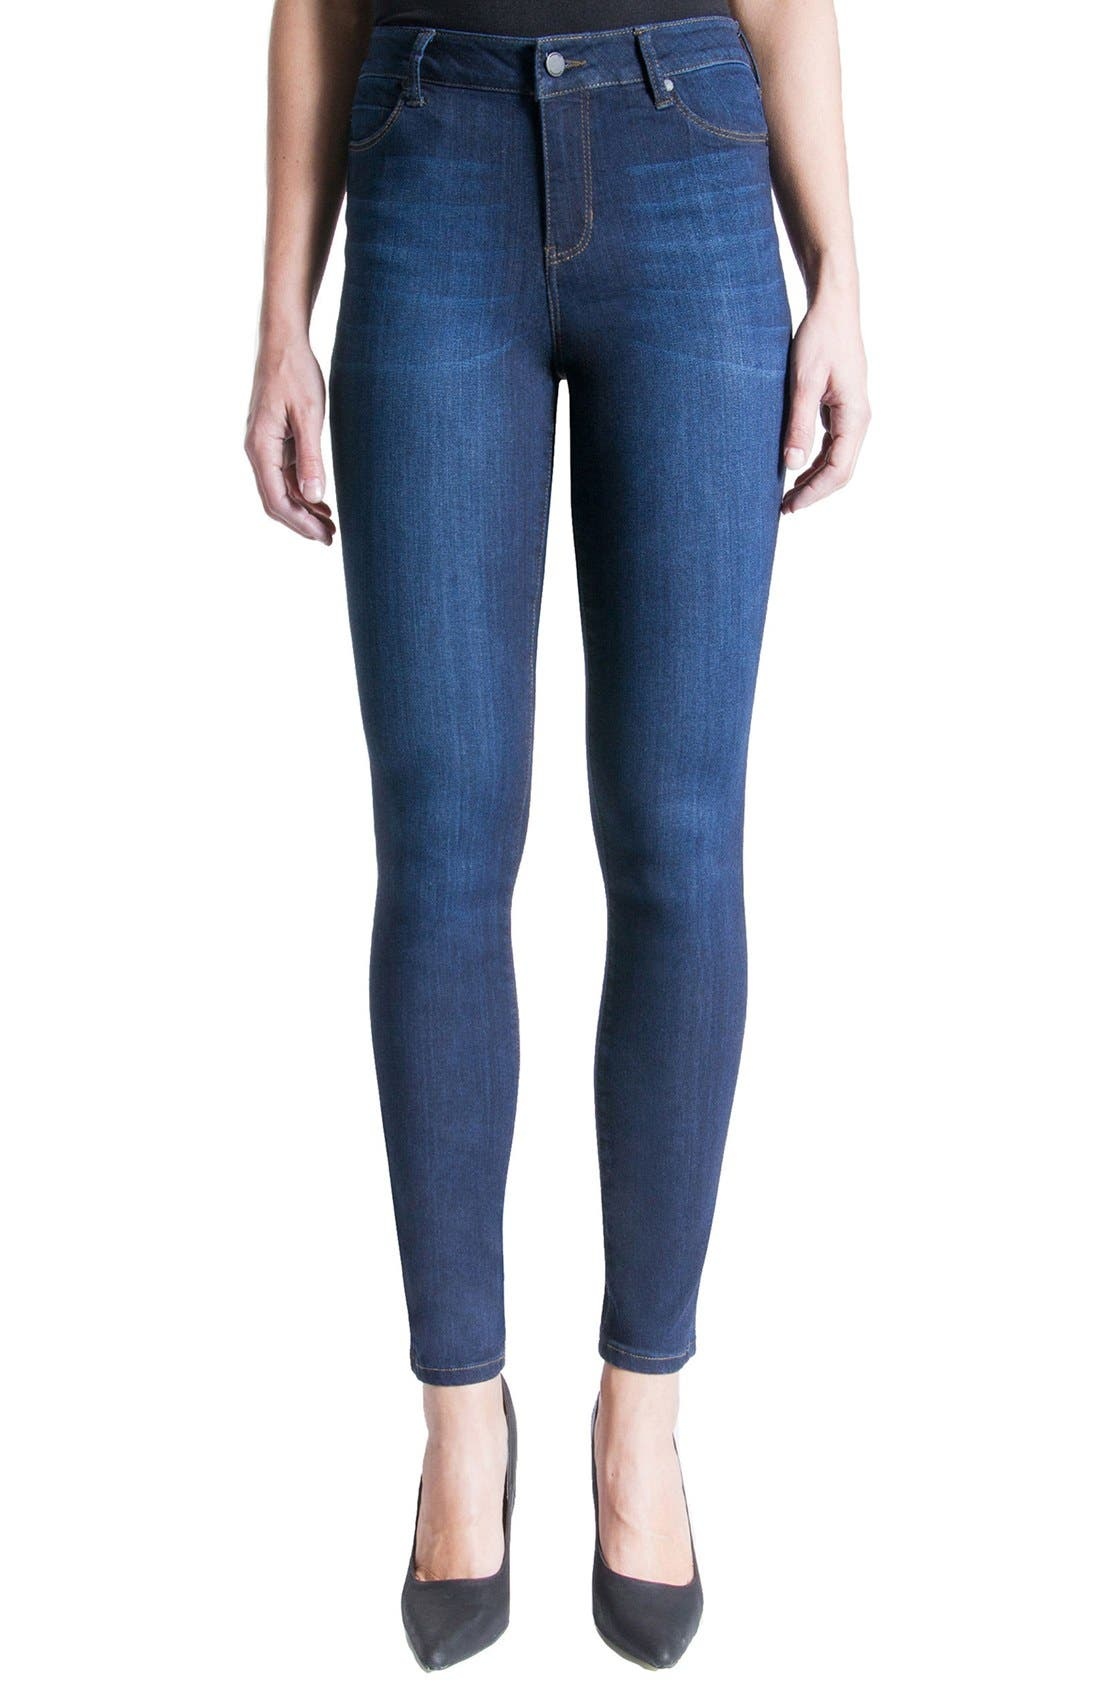 LIVERPOOL JEANS COMPANY Abby Mid Rise Soft Stretch Skinny Jeans